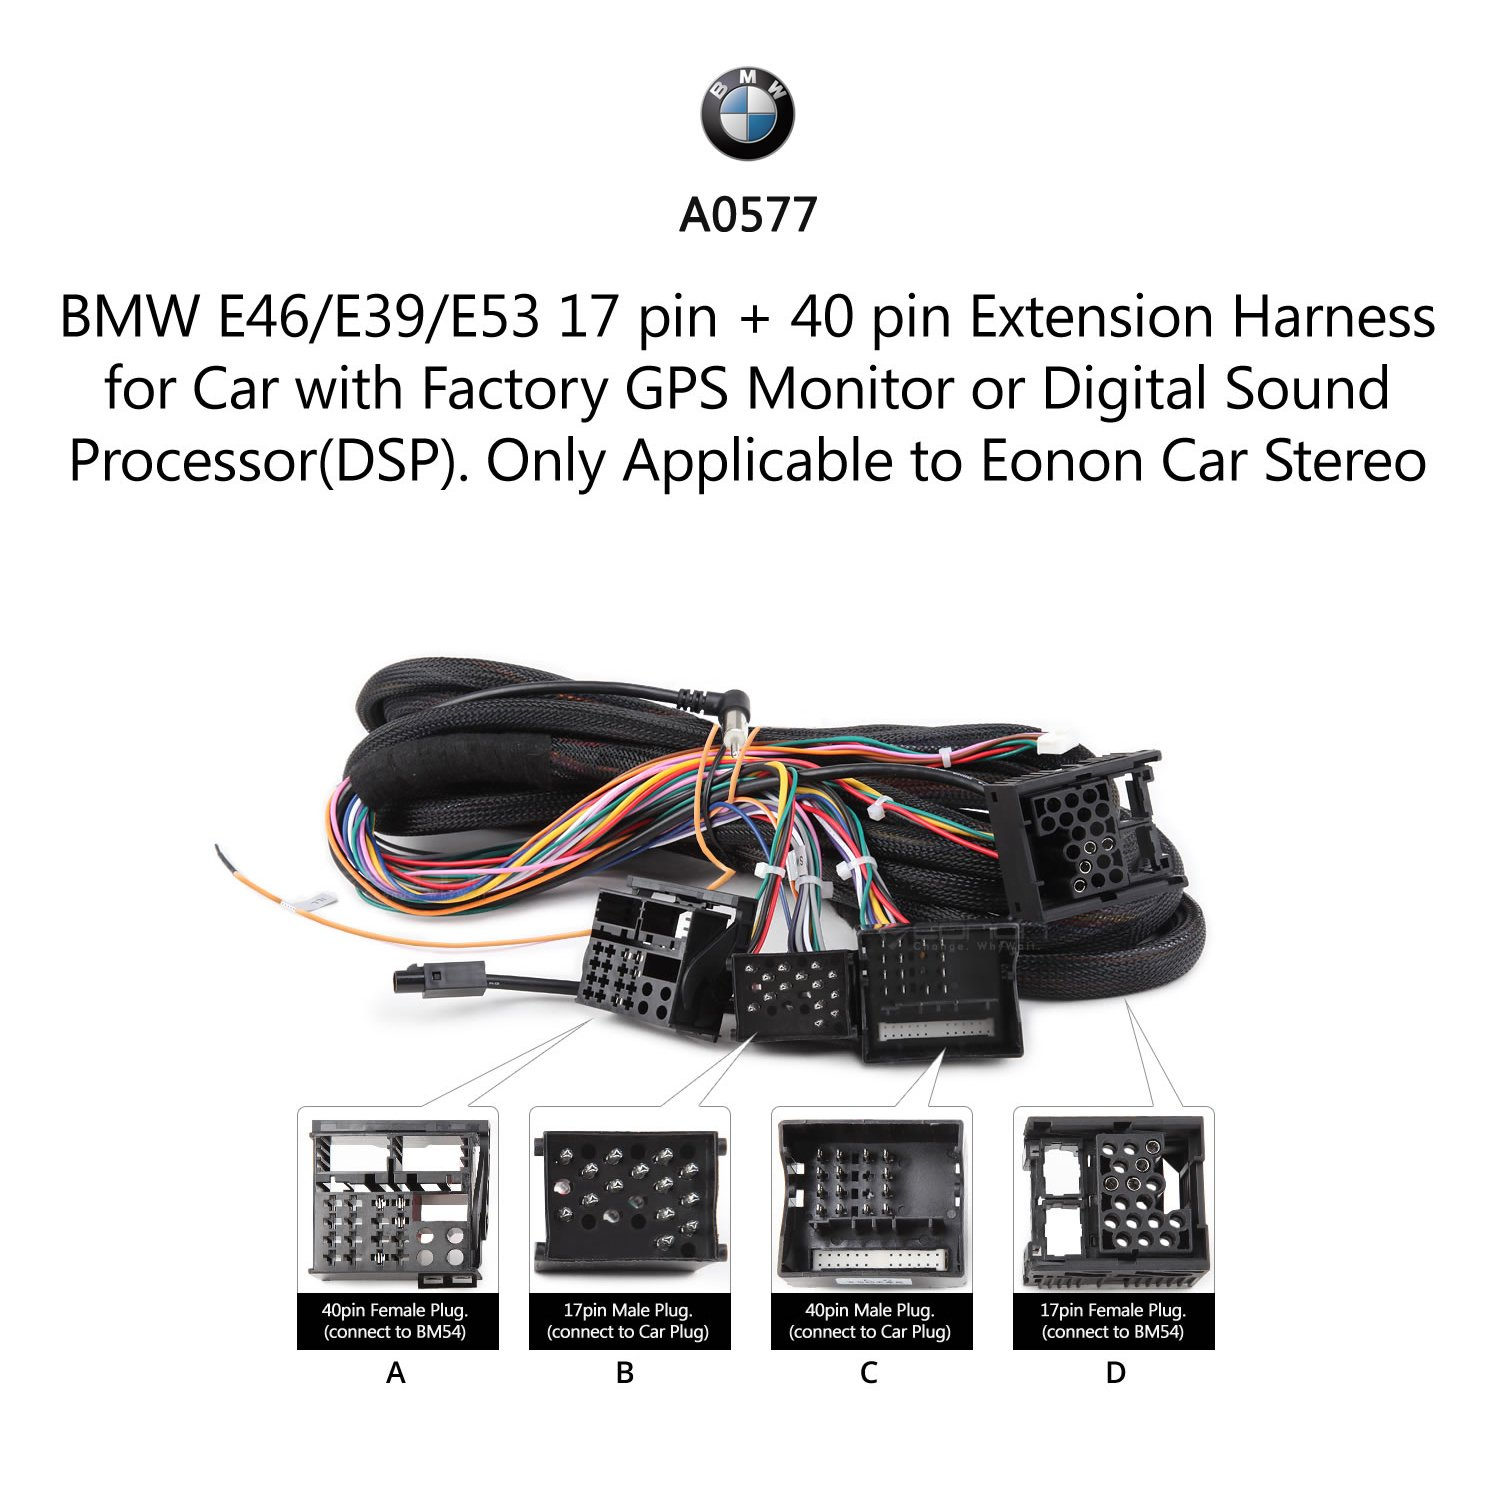 eonon extended Installation Wiring Harness Cables ONLY fit GA9150A GA9201A  A0577: Amazon.co.uk: Electronics